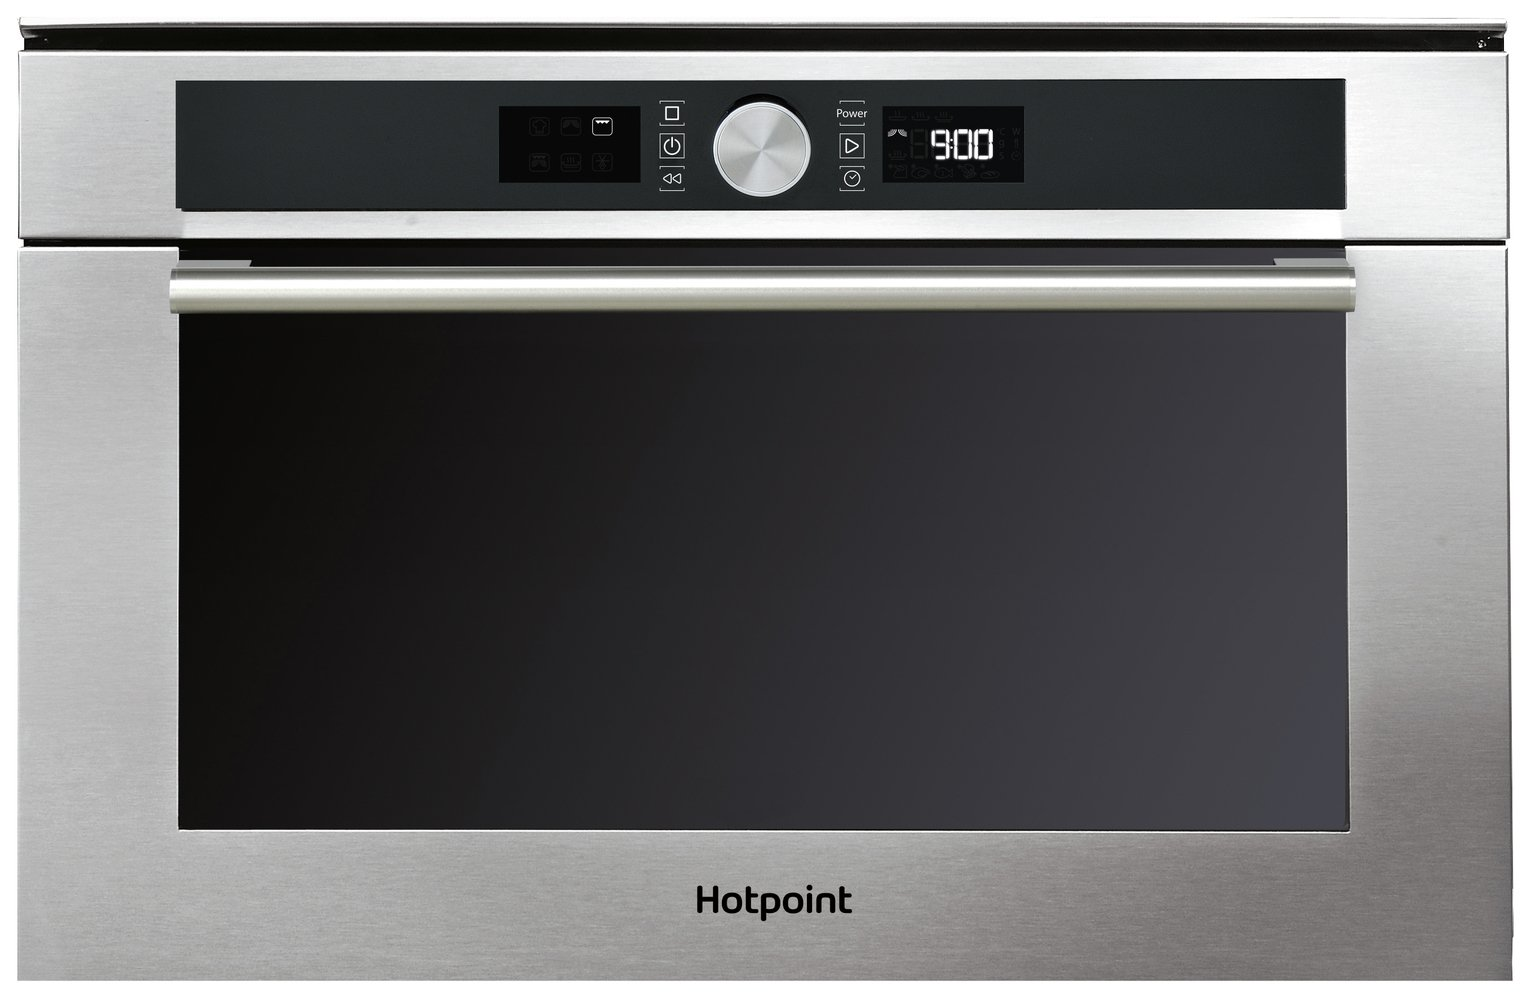 Hotpoint MD454IXH 1000W Built In Microwave - Stainless Steel